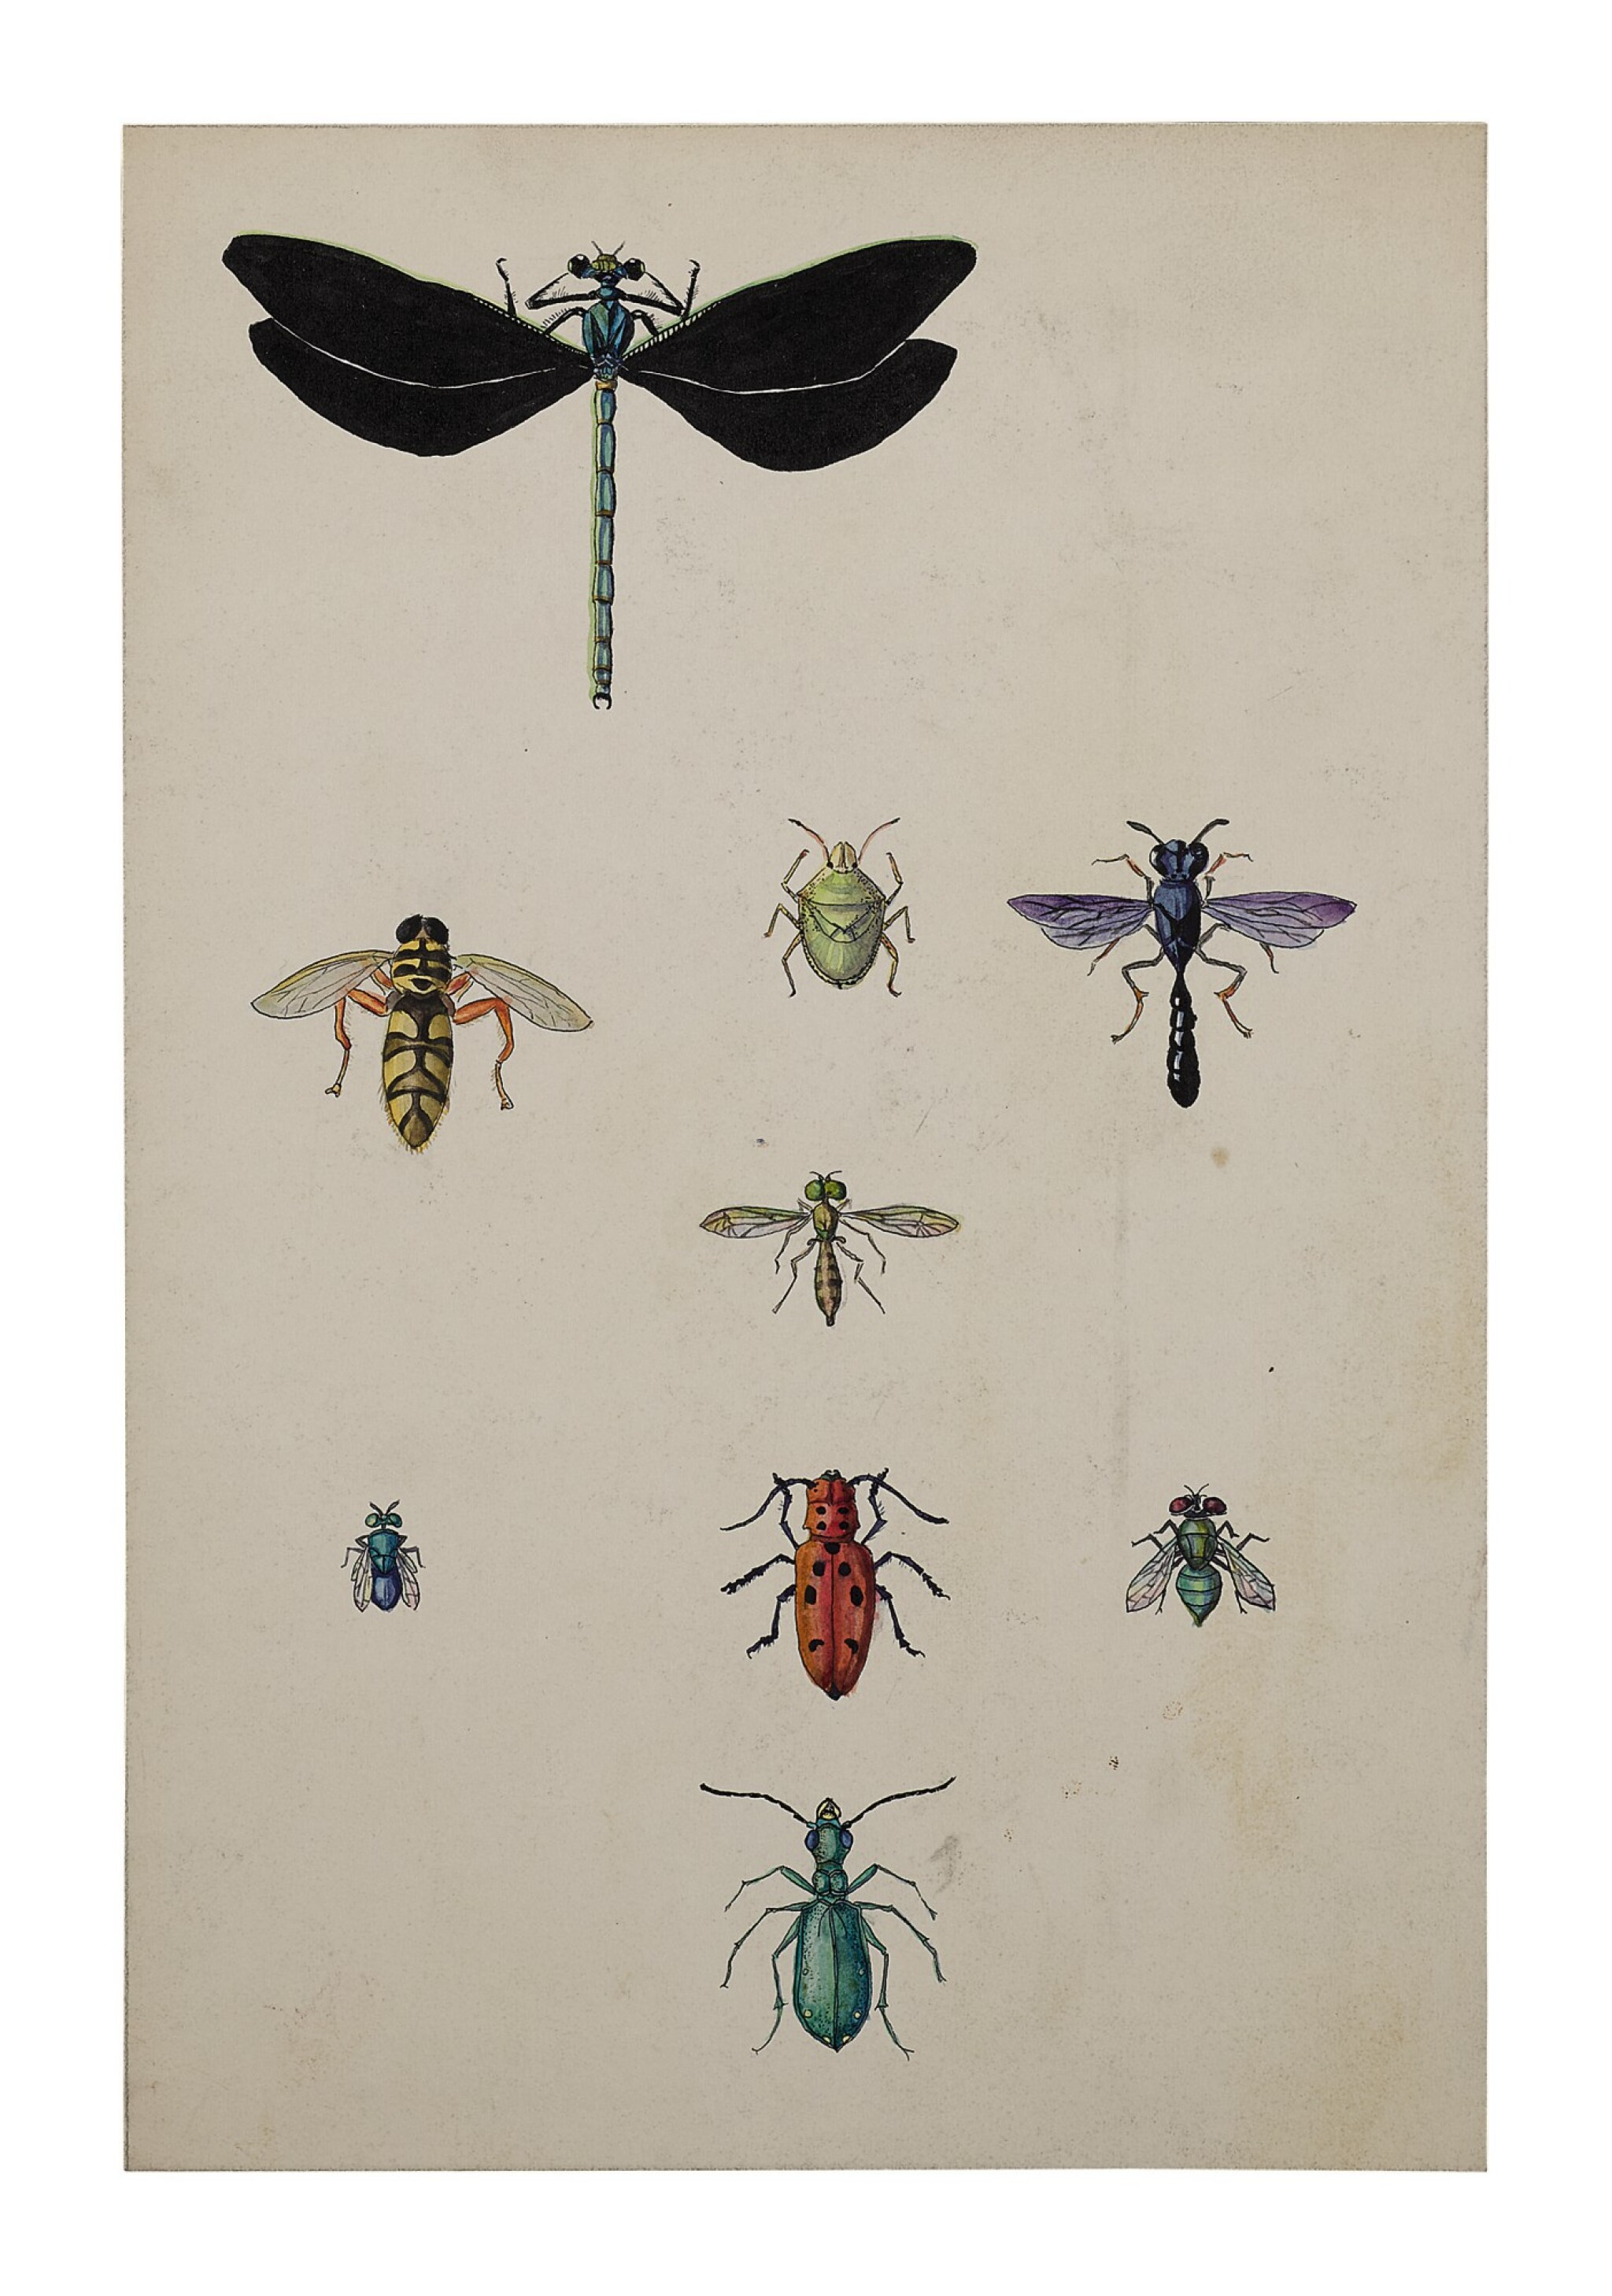 View full screen - View 1 of Lot 6. DAMSELFLY, HOVERFLY, STINKBUG, SPHECID WASP, LONG-HORN BEETLE, HALICTID BEE, XYLOPHAGID FLY, TIGER BEETLE.